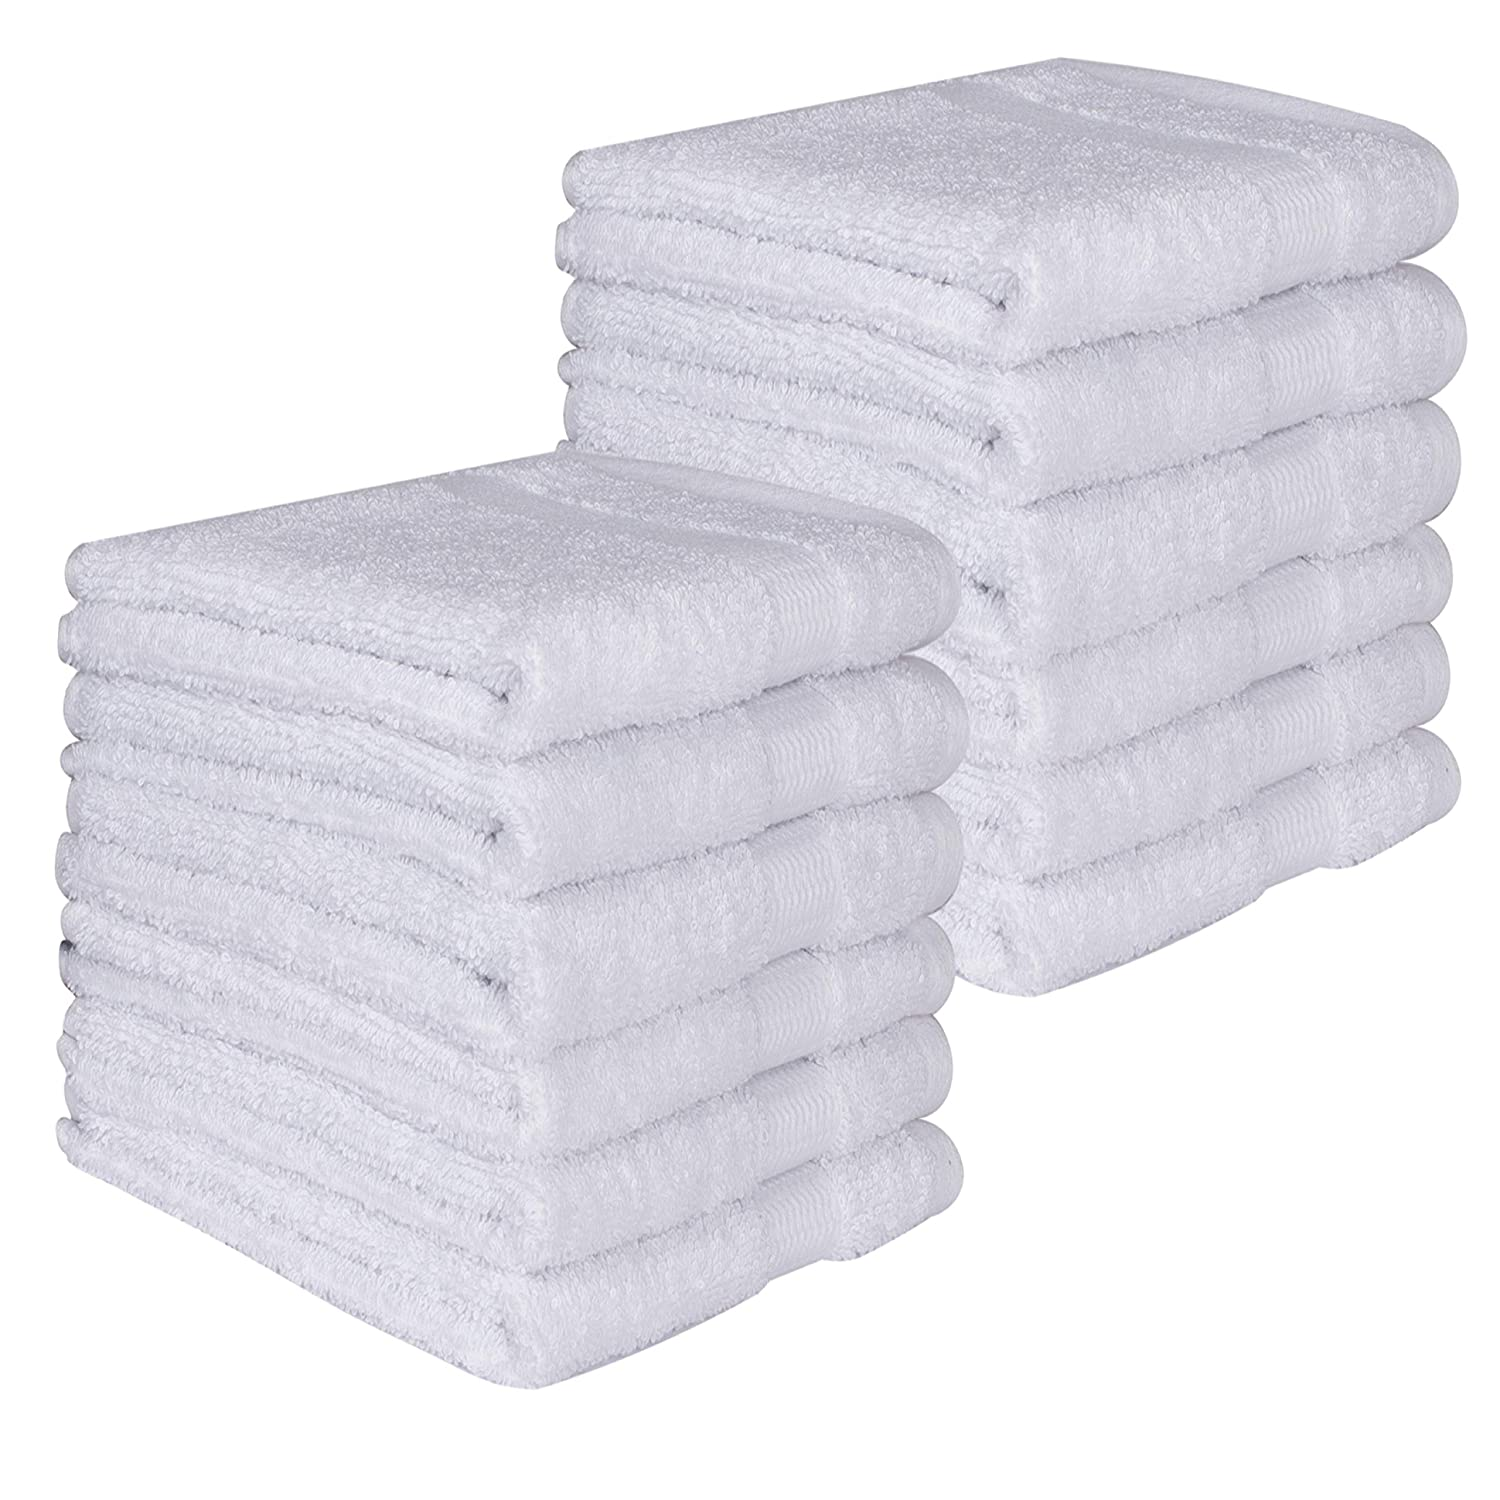 PAMCOTTON Genuine TURKISH COTTON 12 Piece of Eco-Friendly Washcloth Set Bosphorus Collection 13x13 inch Luxury Hotel/&Spa 600GSM WHITE Premium Quality Ultra Soft /& Absorbant